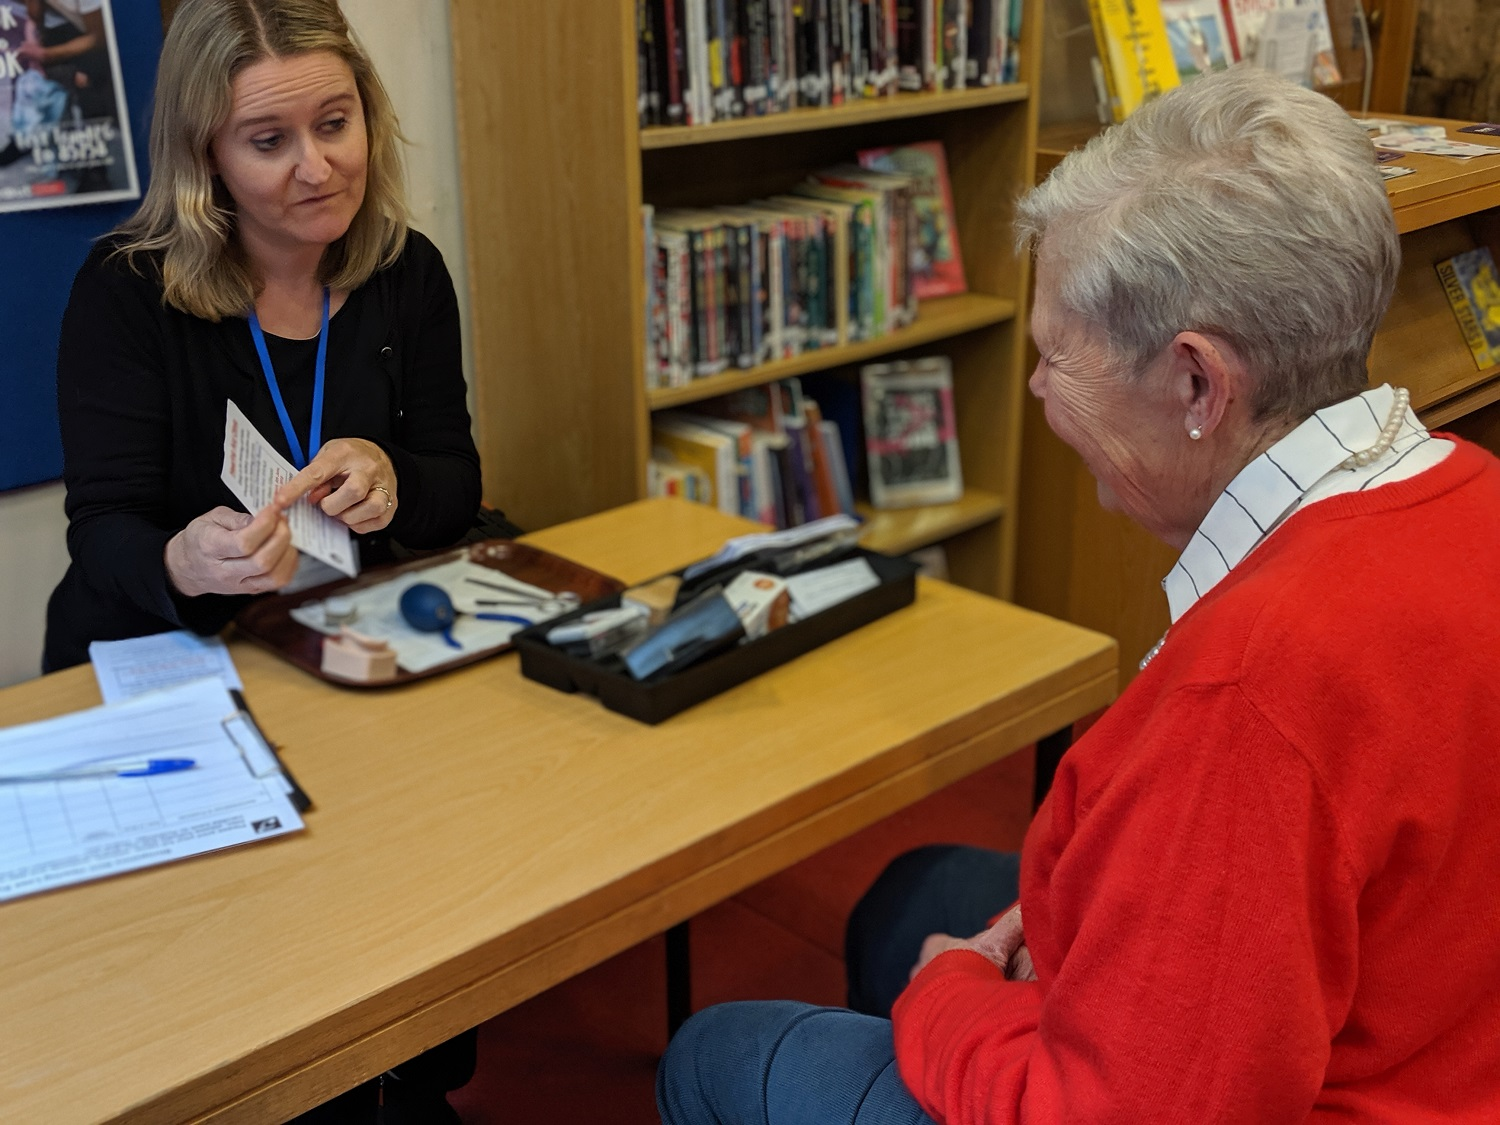 Shropshire RCC hearing loss support volunteer clinic